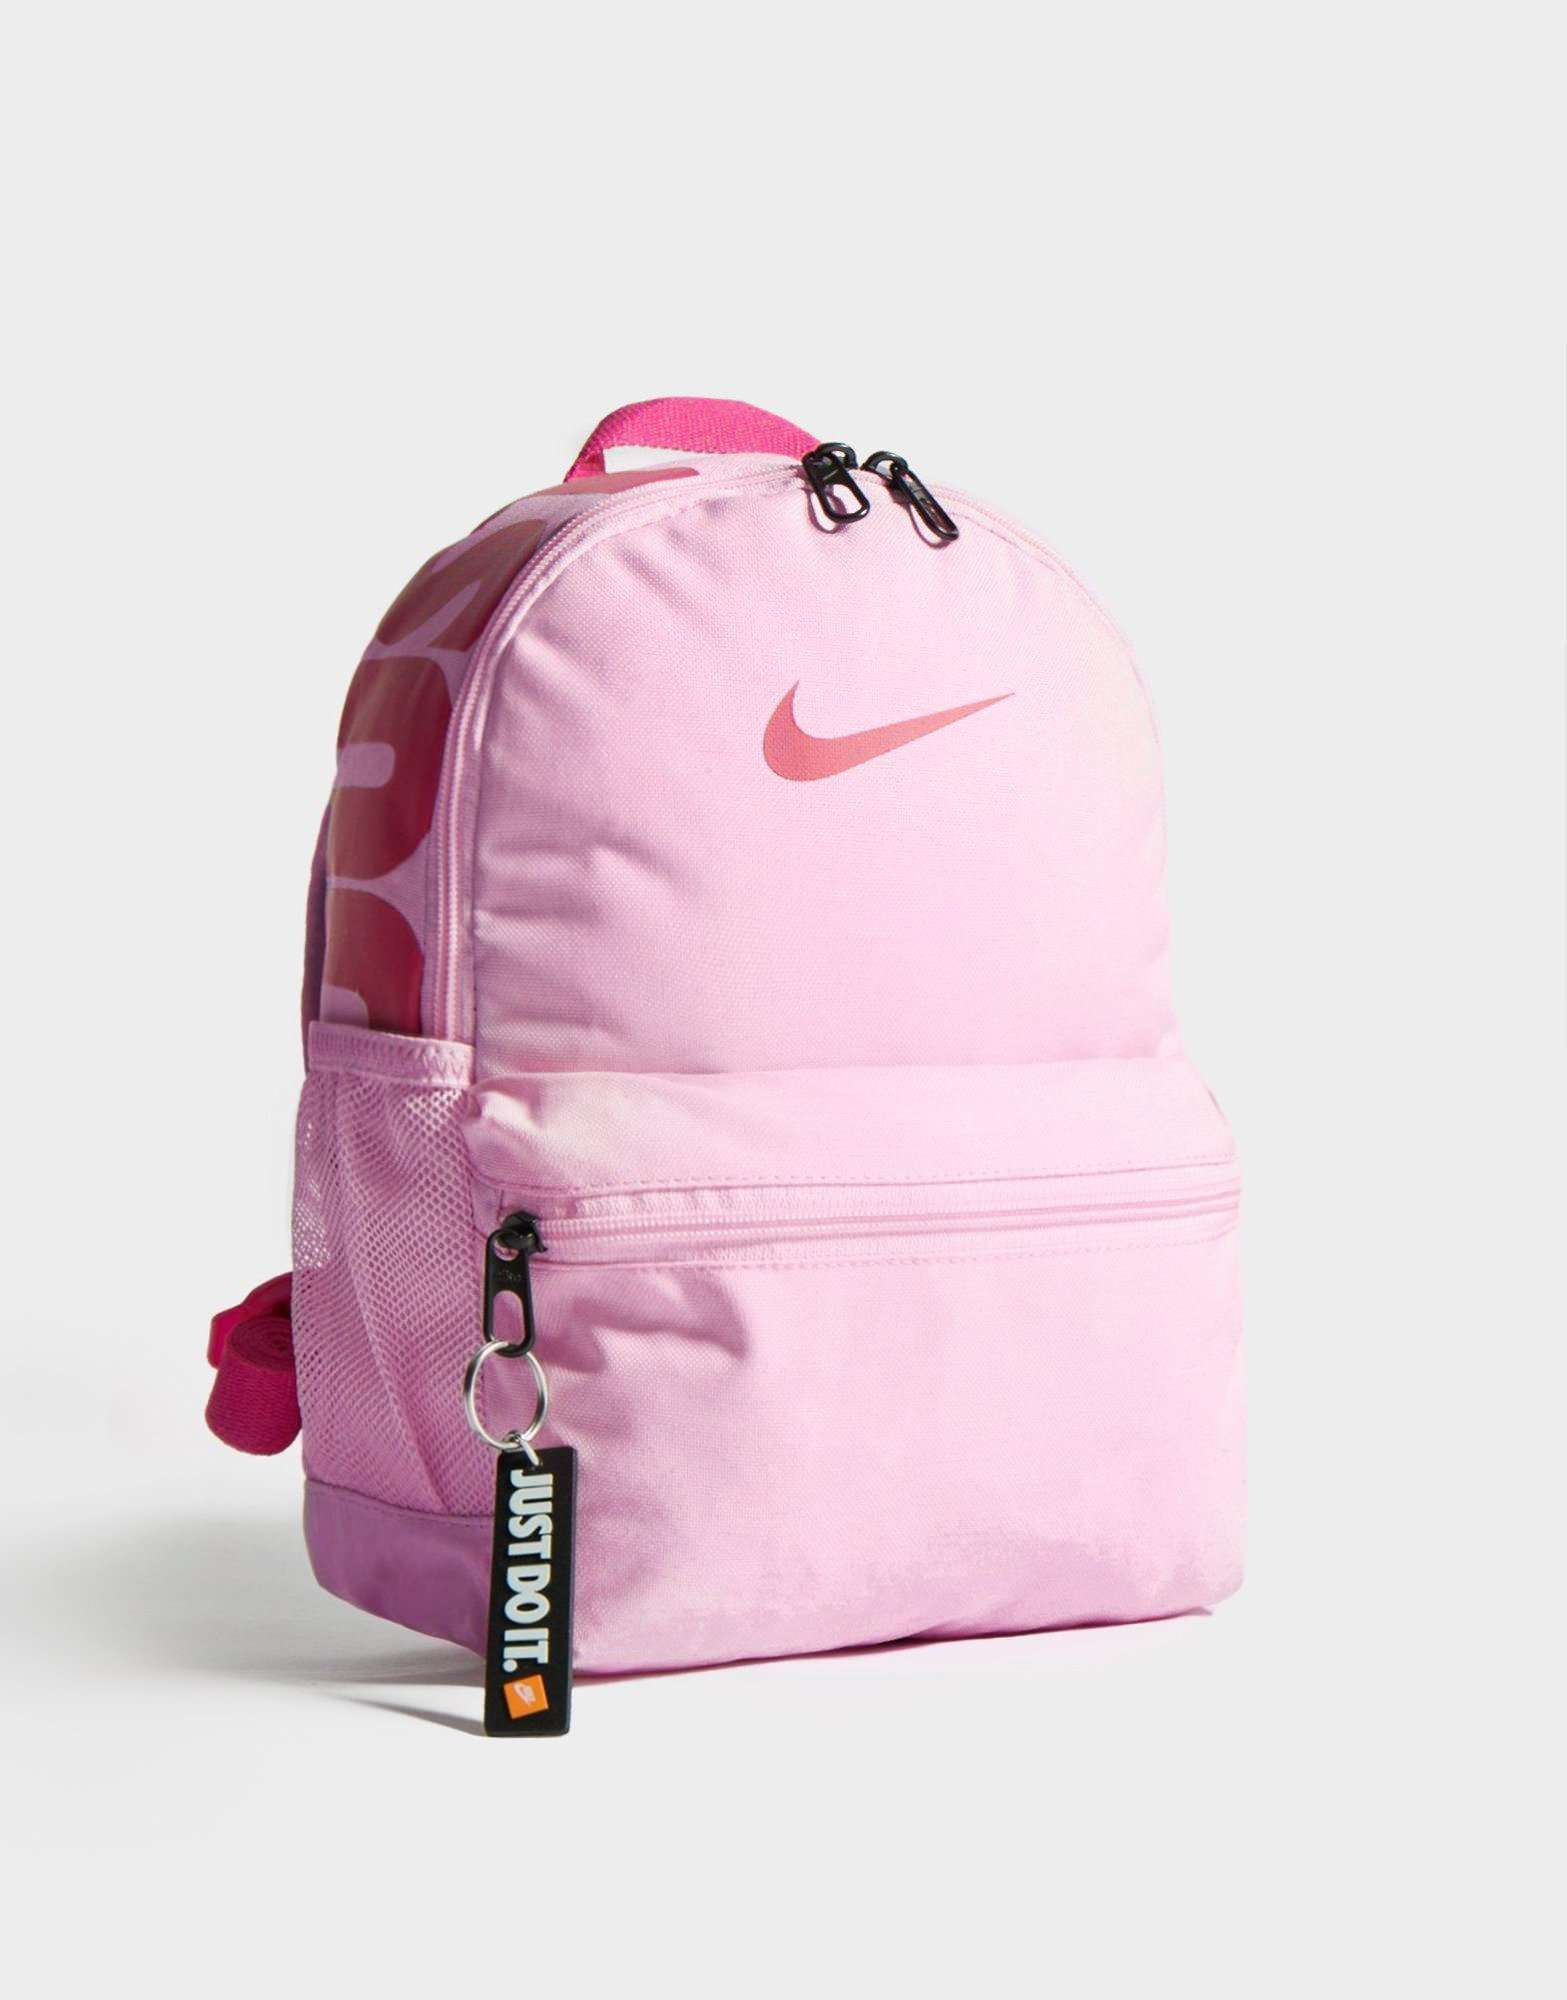 c6d177157a730 Nike Just Do It Mini Backpack Size – Patmo Technologies Limited